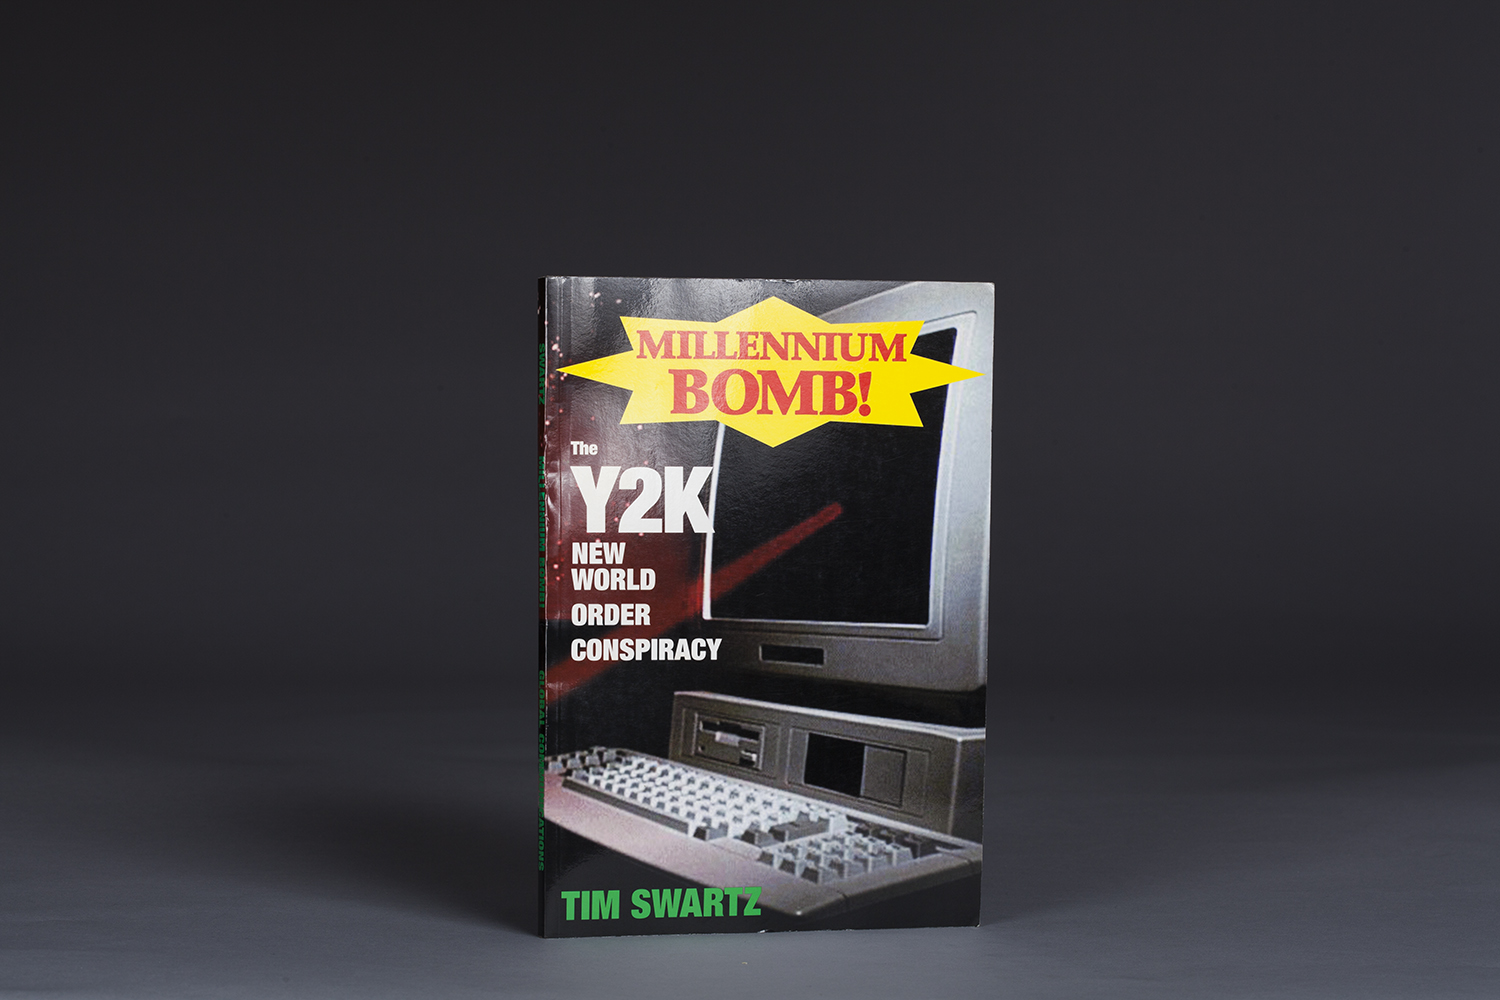 Millennium Bomb The Y2K New World Order Conspiracy - 9752 Cover.jpg